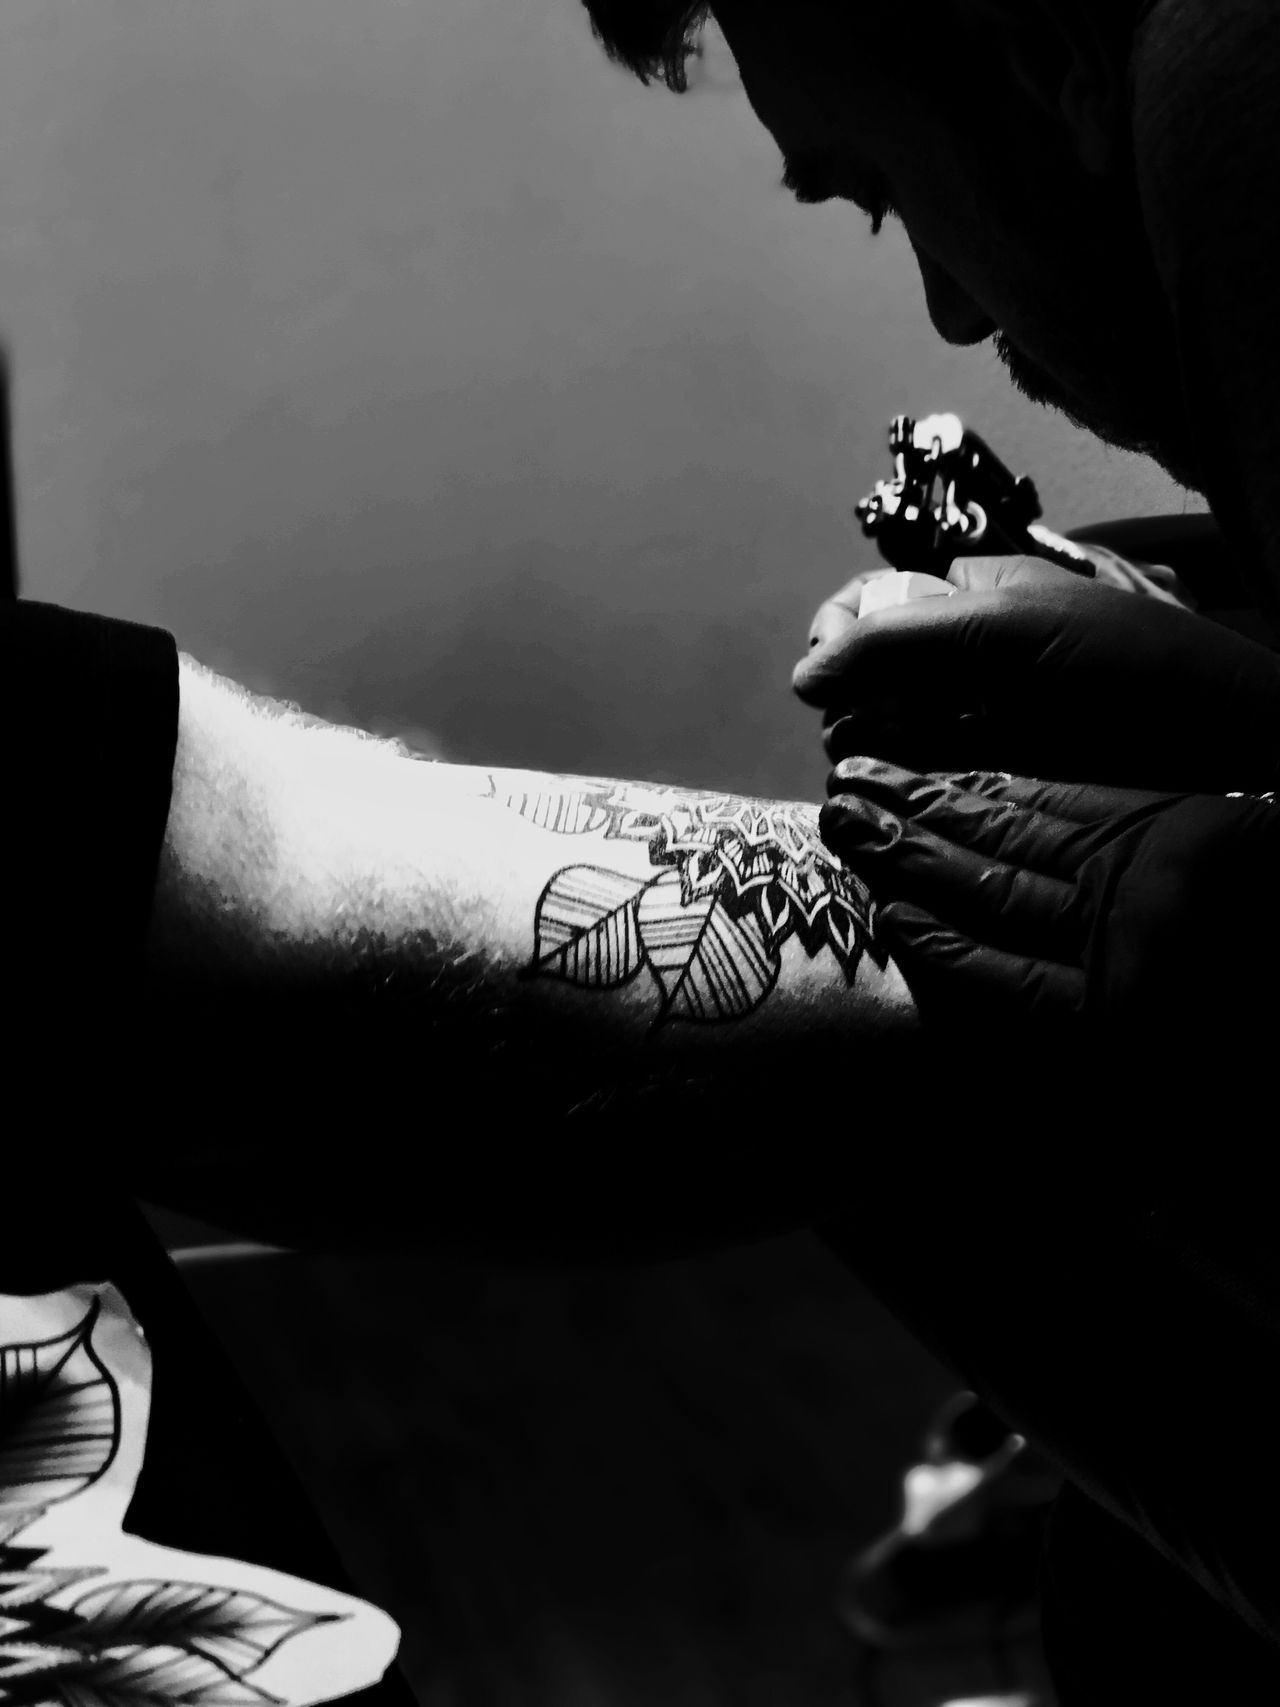 Real People Lifestyles Close-up Blackandwhite Photography Tattoo Life Tattoo Shop